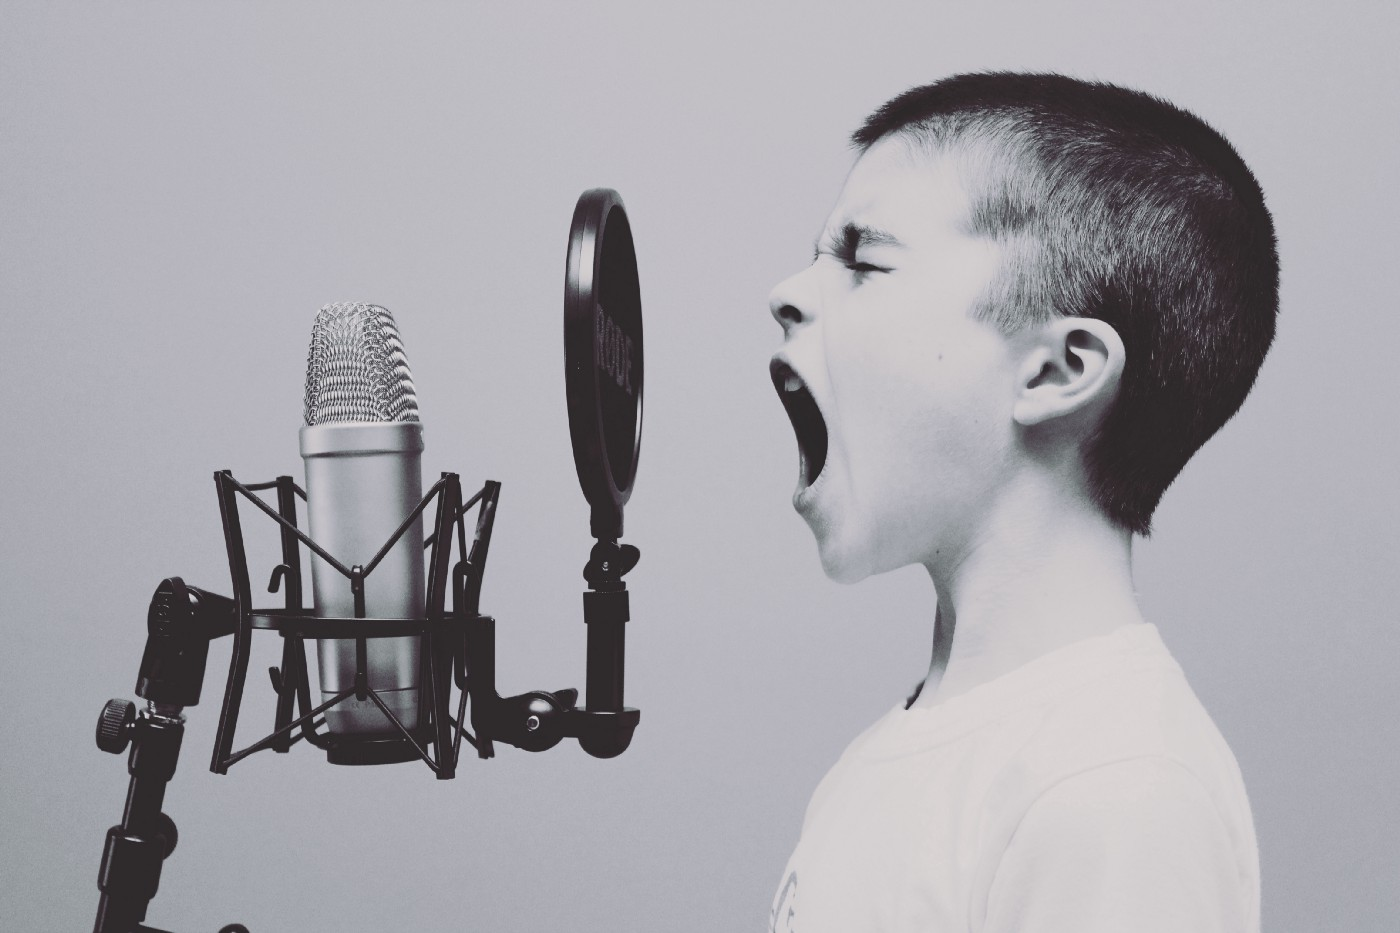 Boy singing or yelling into a microphone